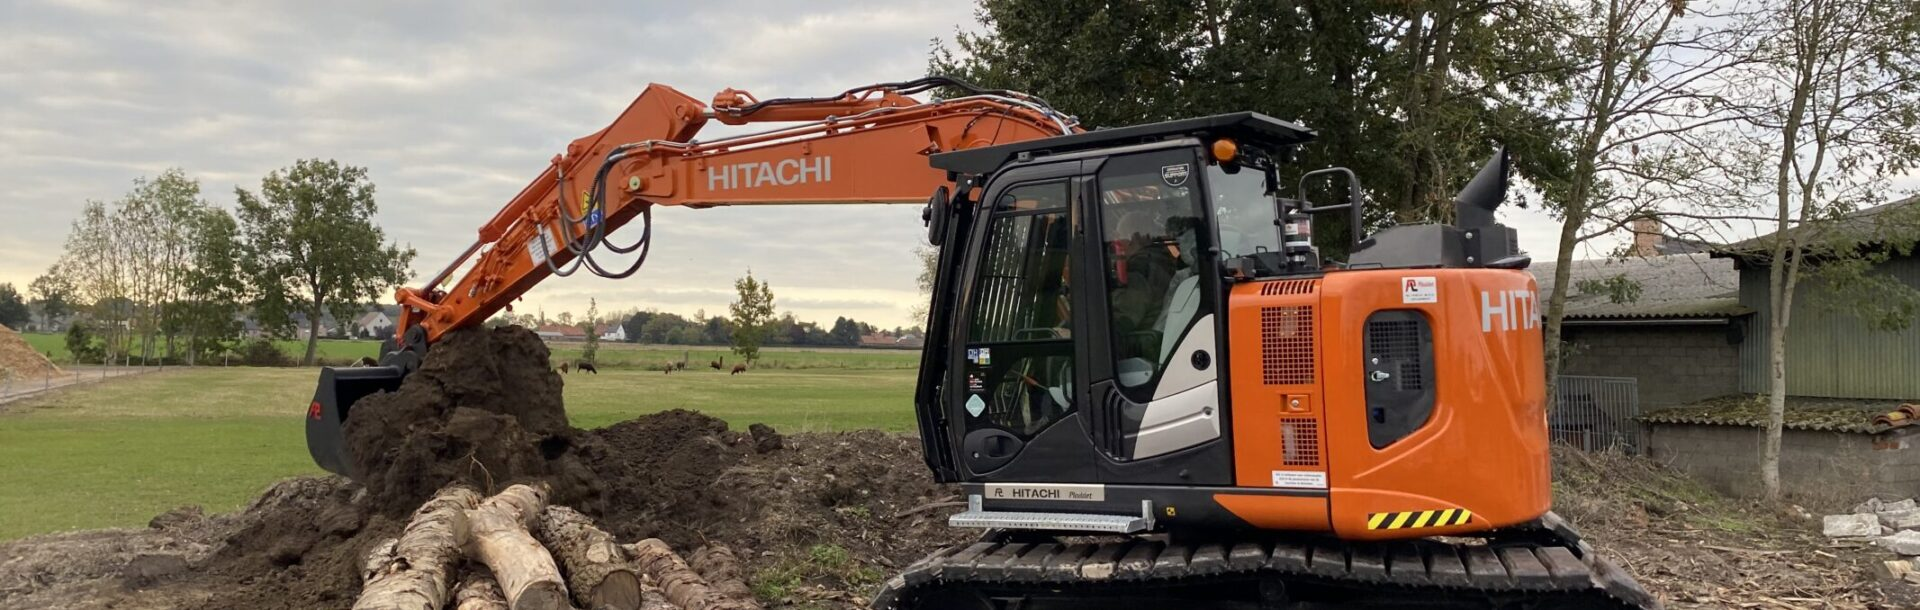 Graafmachine Hitachi ZX135US-6 Sam de Kesel